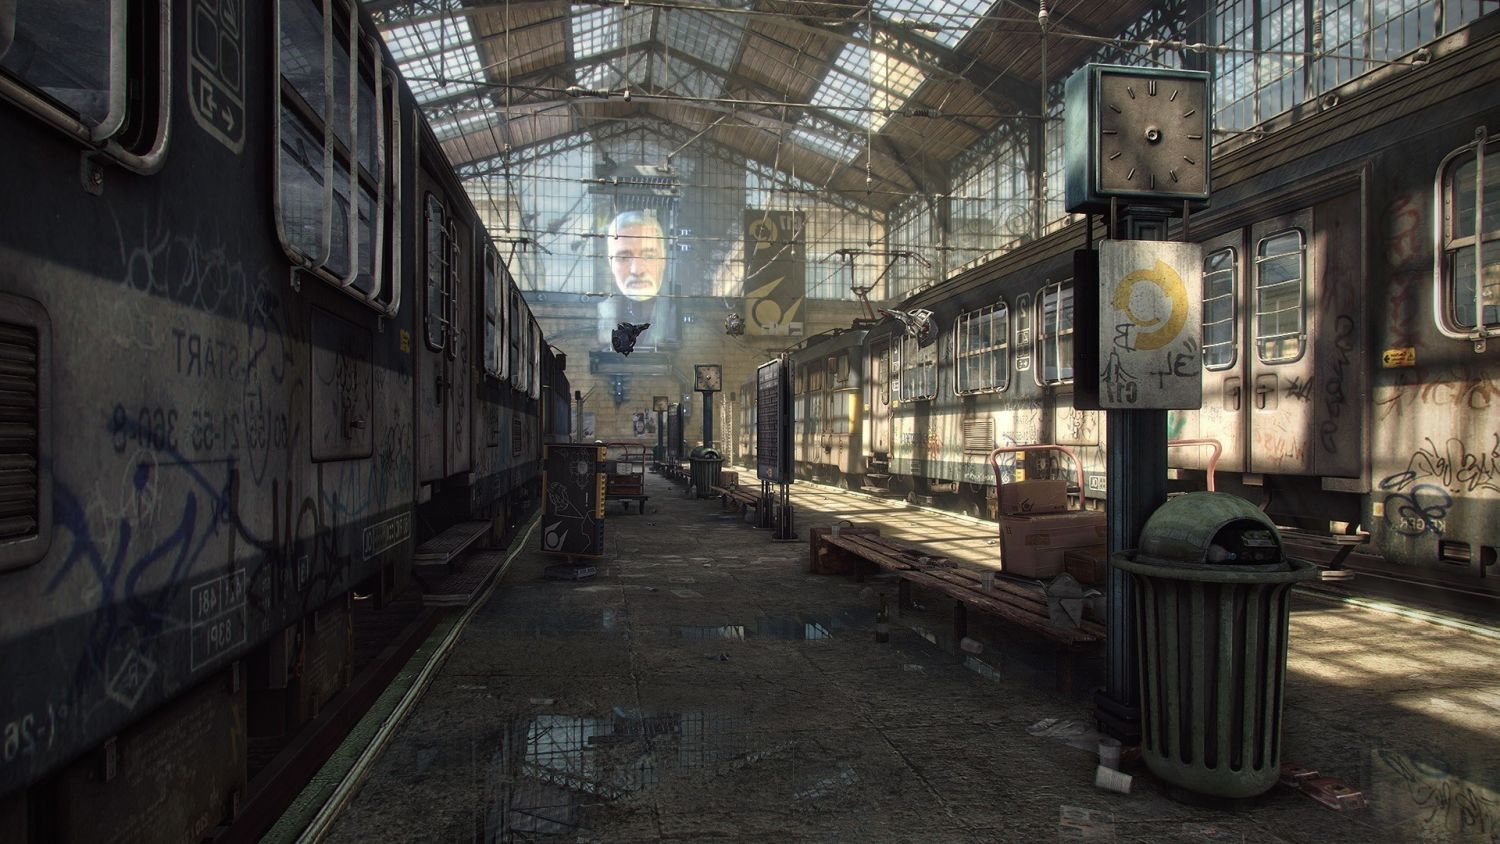 2845869-unreal-engine-4-half-life-2-video-games-apocalyptic-city-17___game-wallpapers